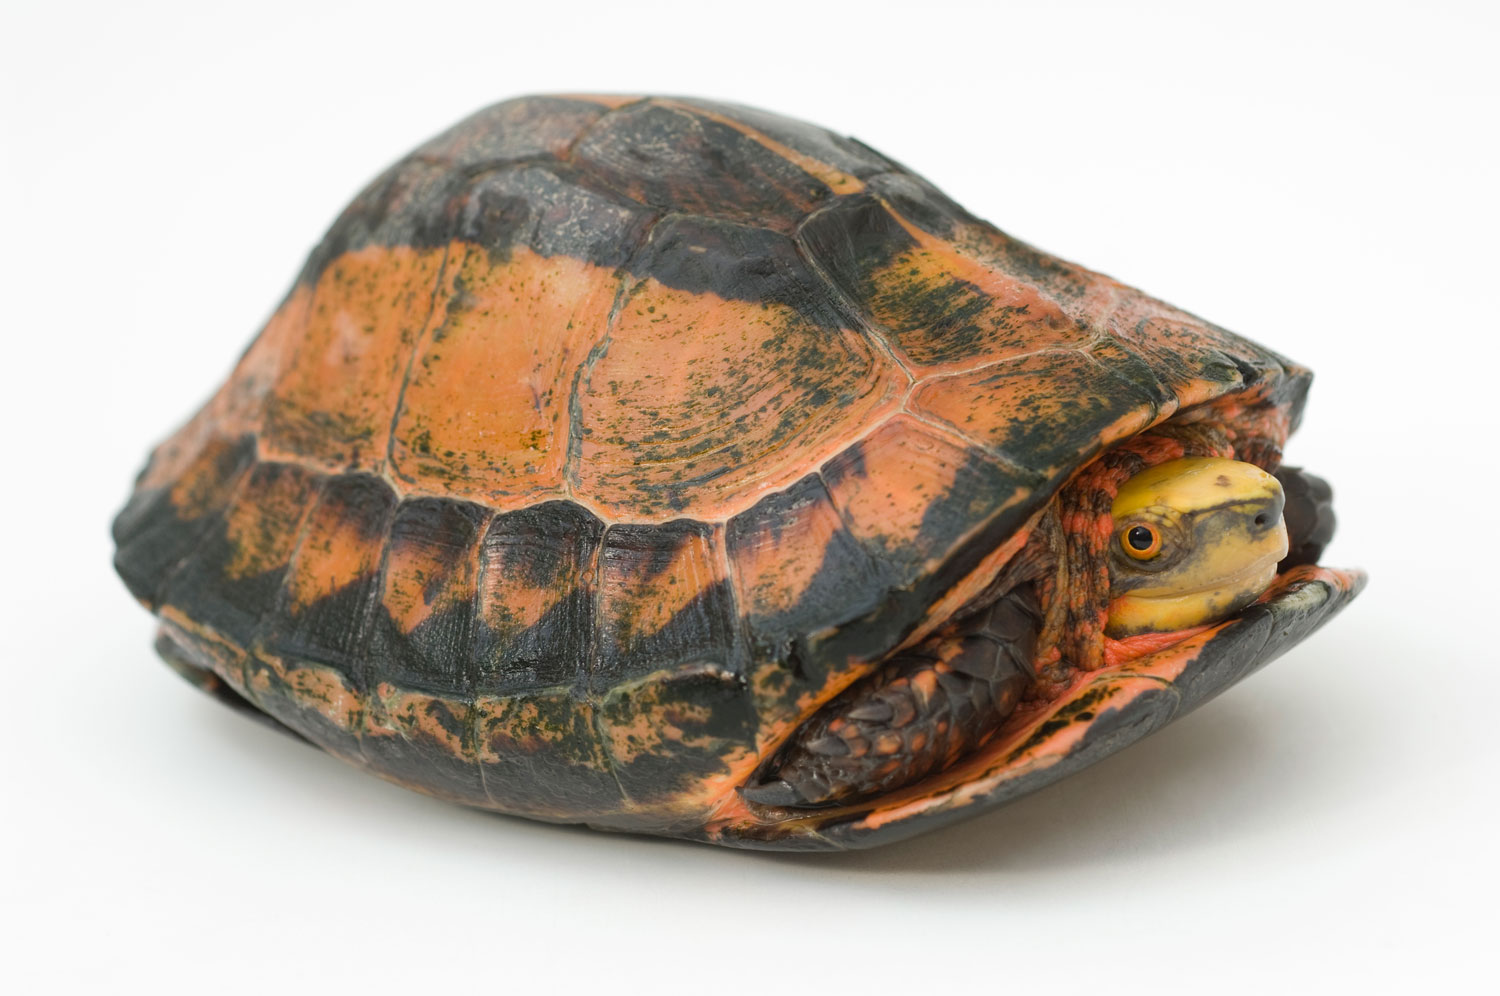 The small Indochinese box turtle is found throughout Southeast Asia, but it's hardly abundant. Like a number of its relatives, the box turtle is critically endangered.